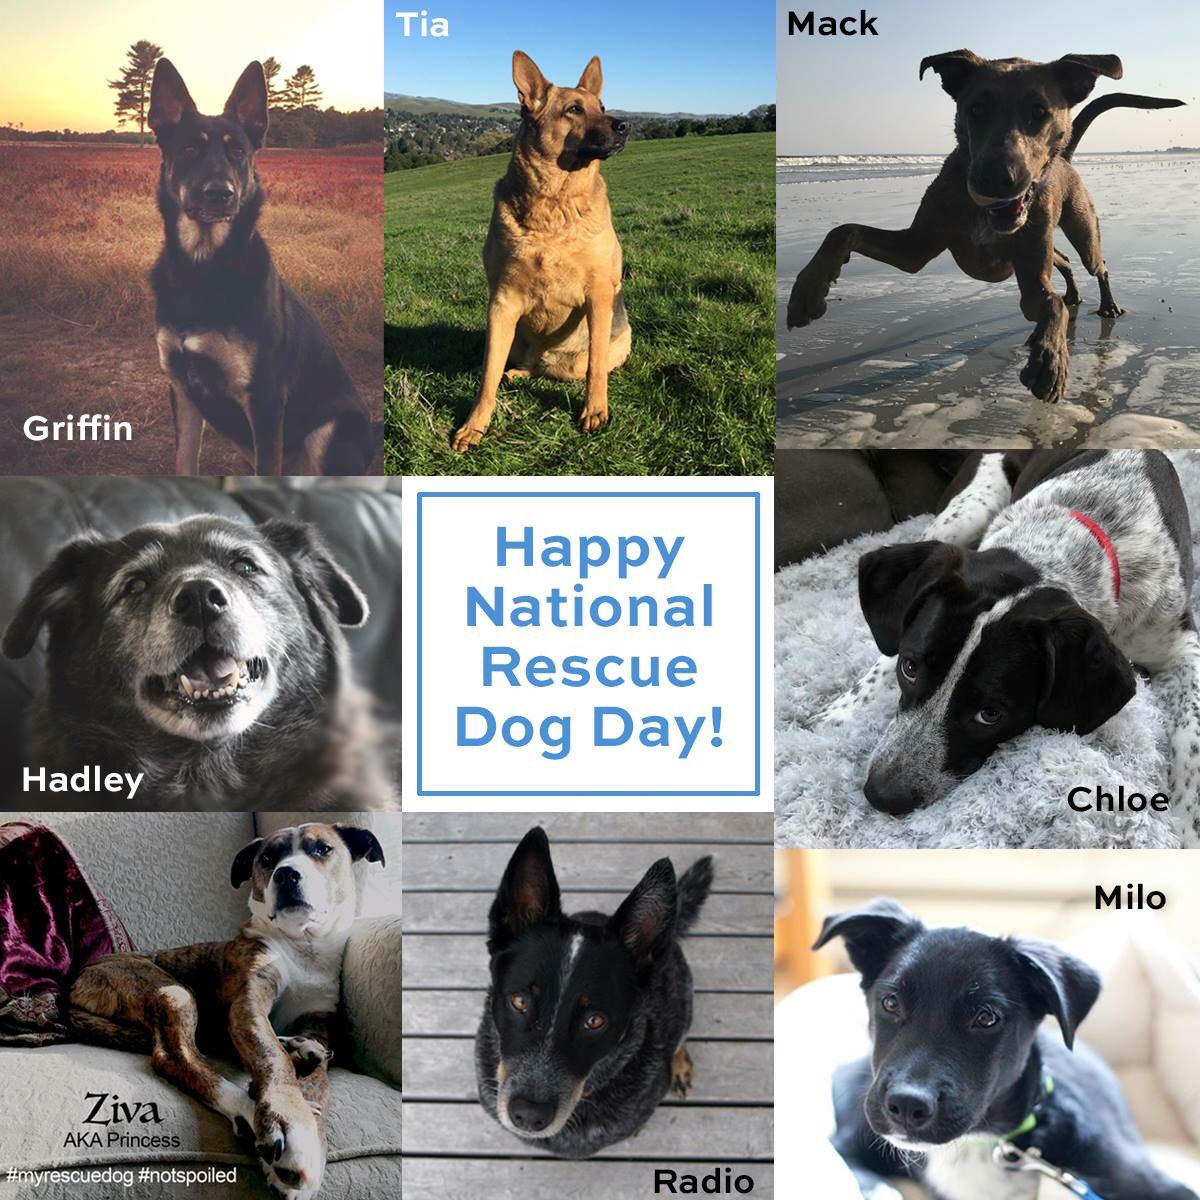 """Saving one dog will not change the world, but surely for that one dog, the world will change forever."" Karen Davison. Happy National Rescue Dog Day from the rescue dogs of Sellers Publishing! A happy, handsome bunch! #rescuedogs #rescuedog #nationalrescuedogday #companycanines"